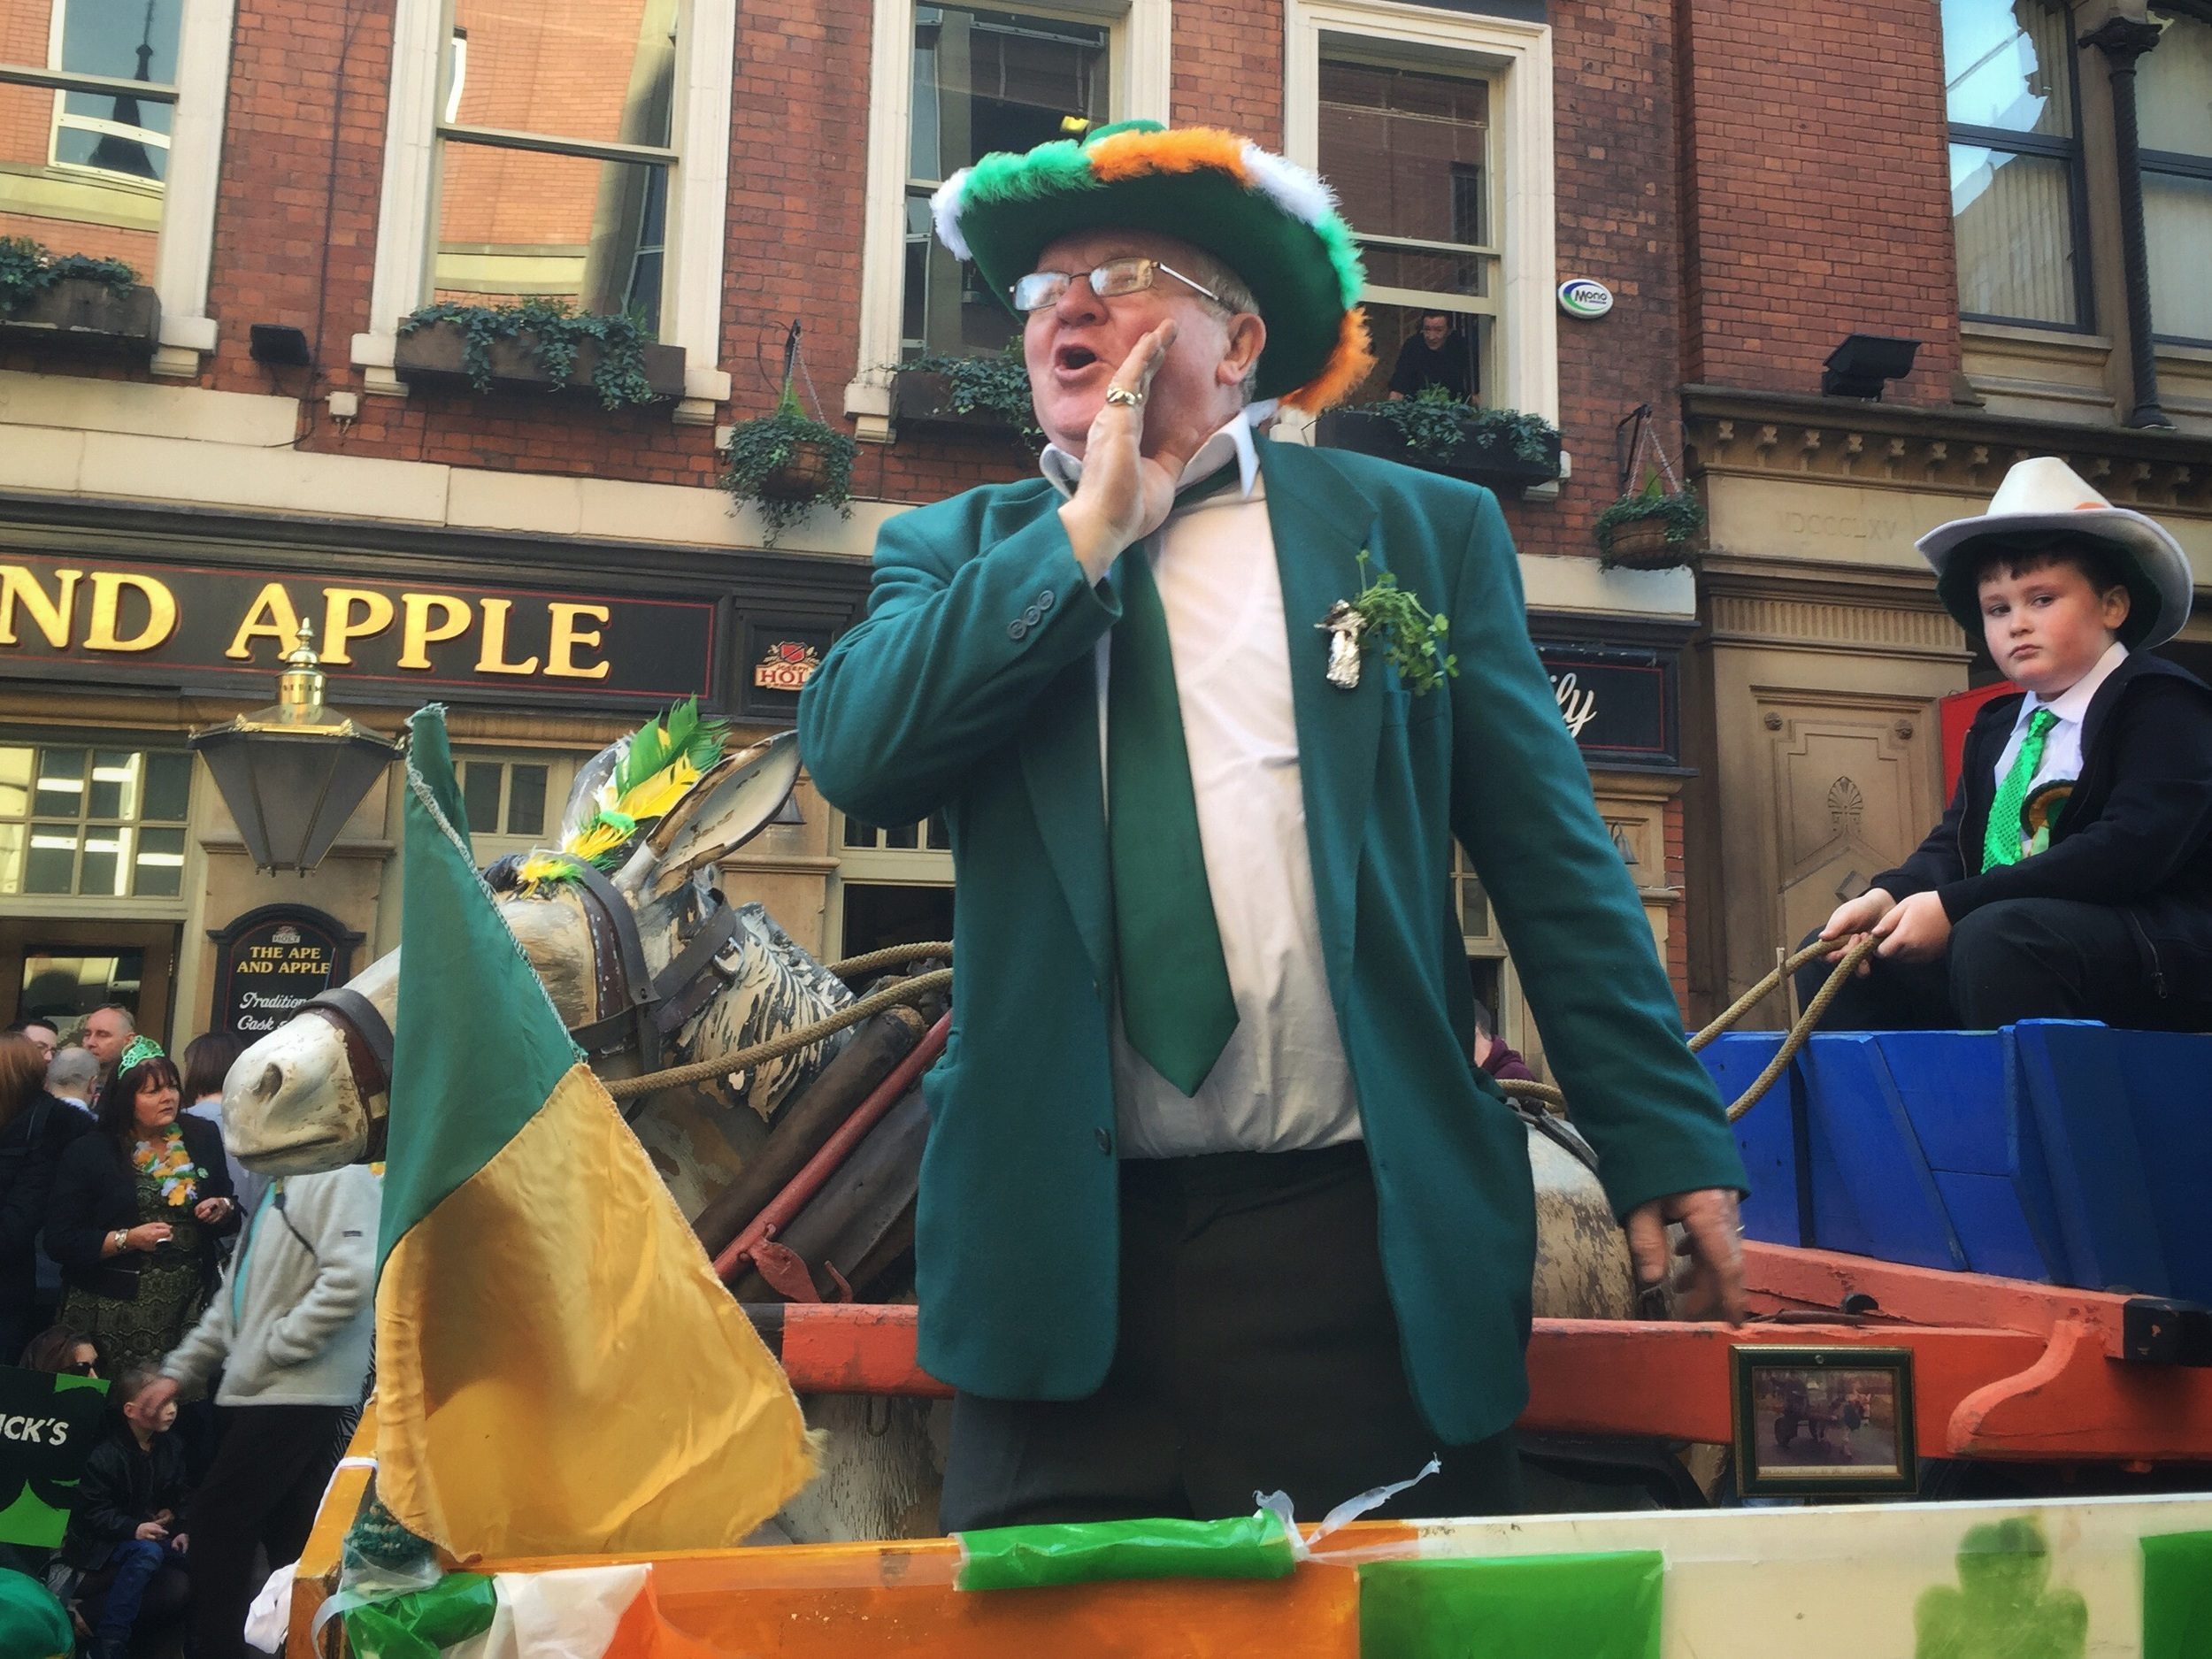 2016 Manchester Irish Parade.jpg